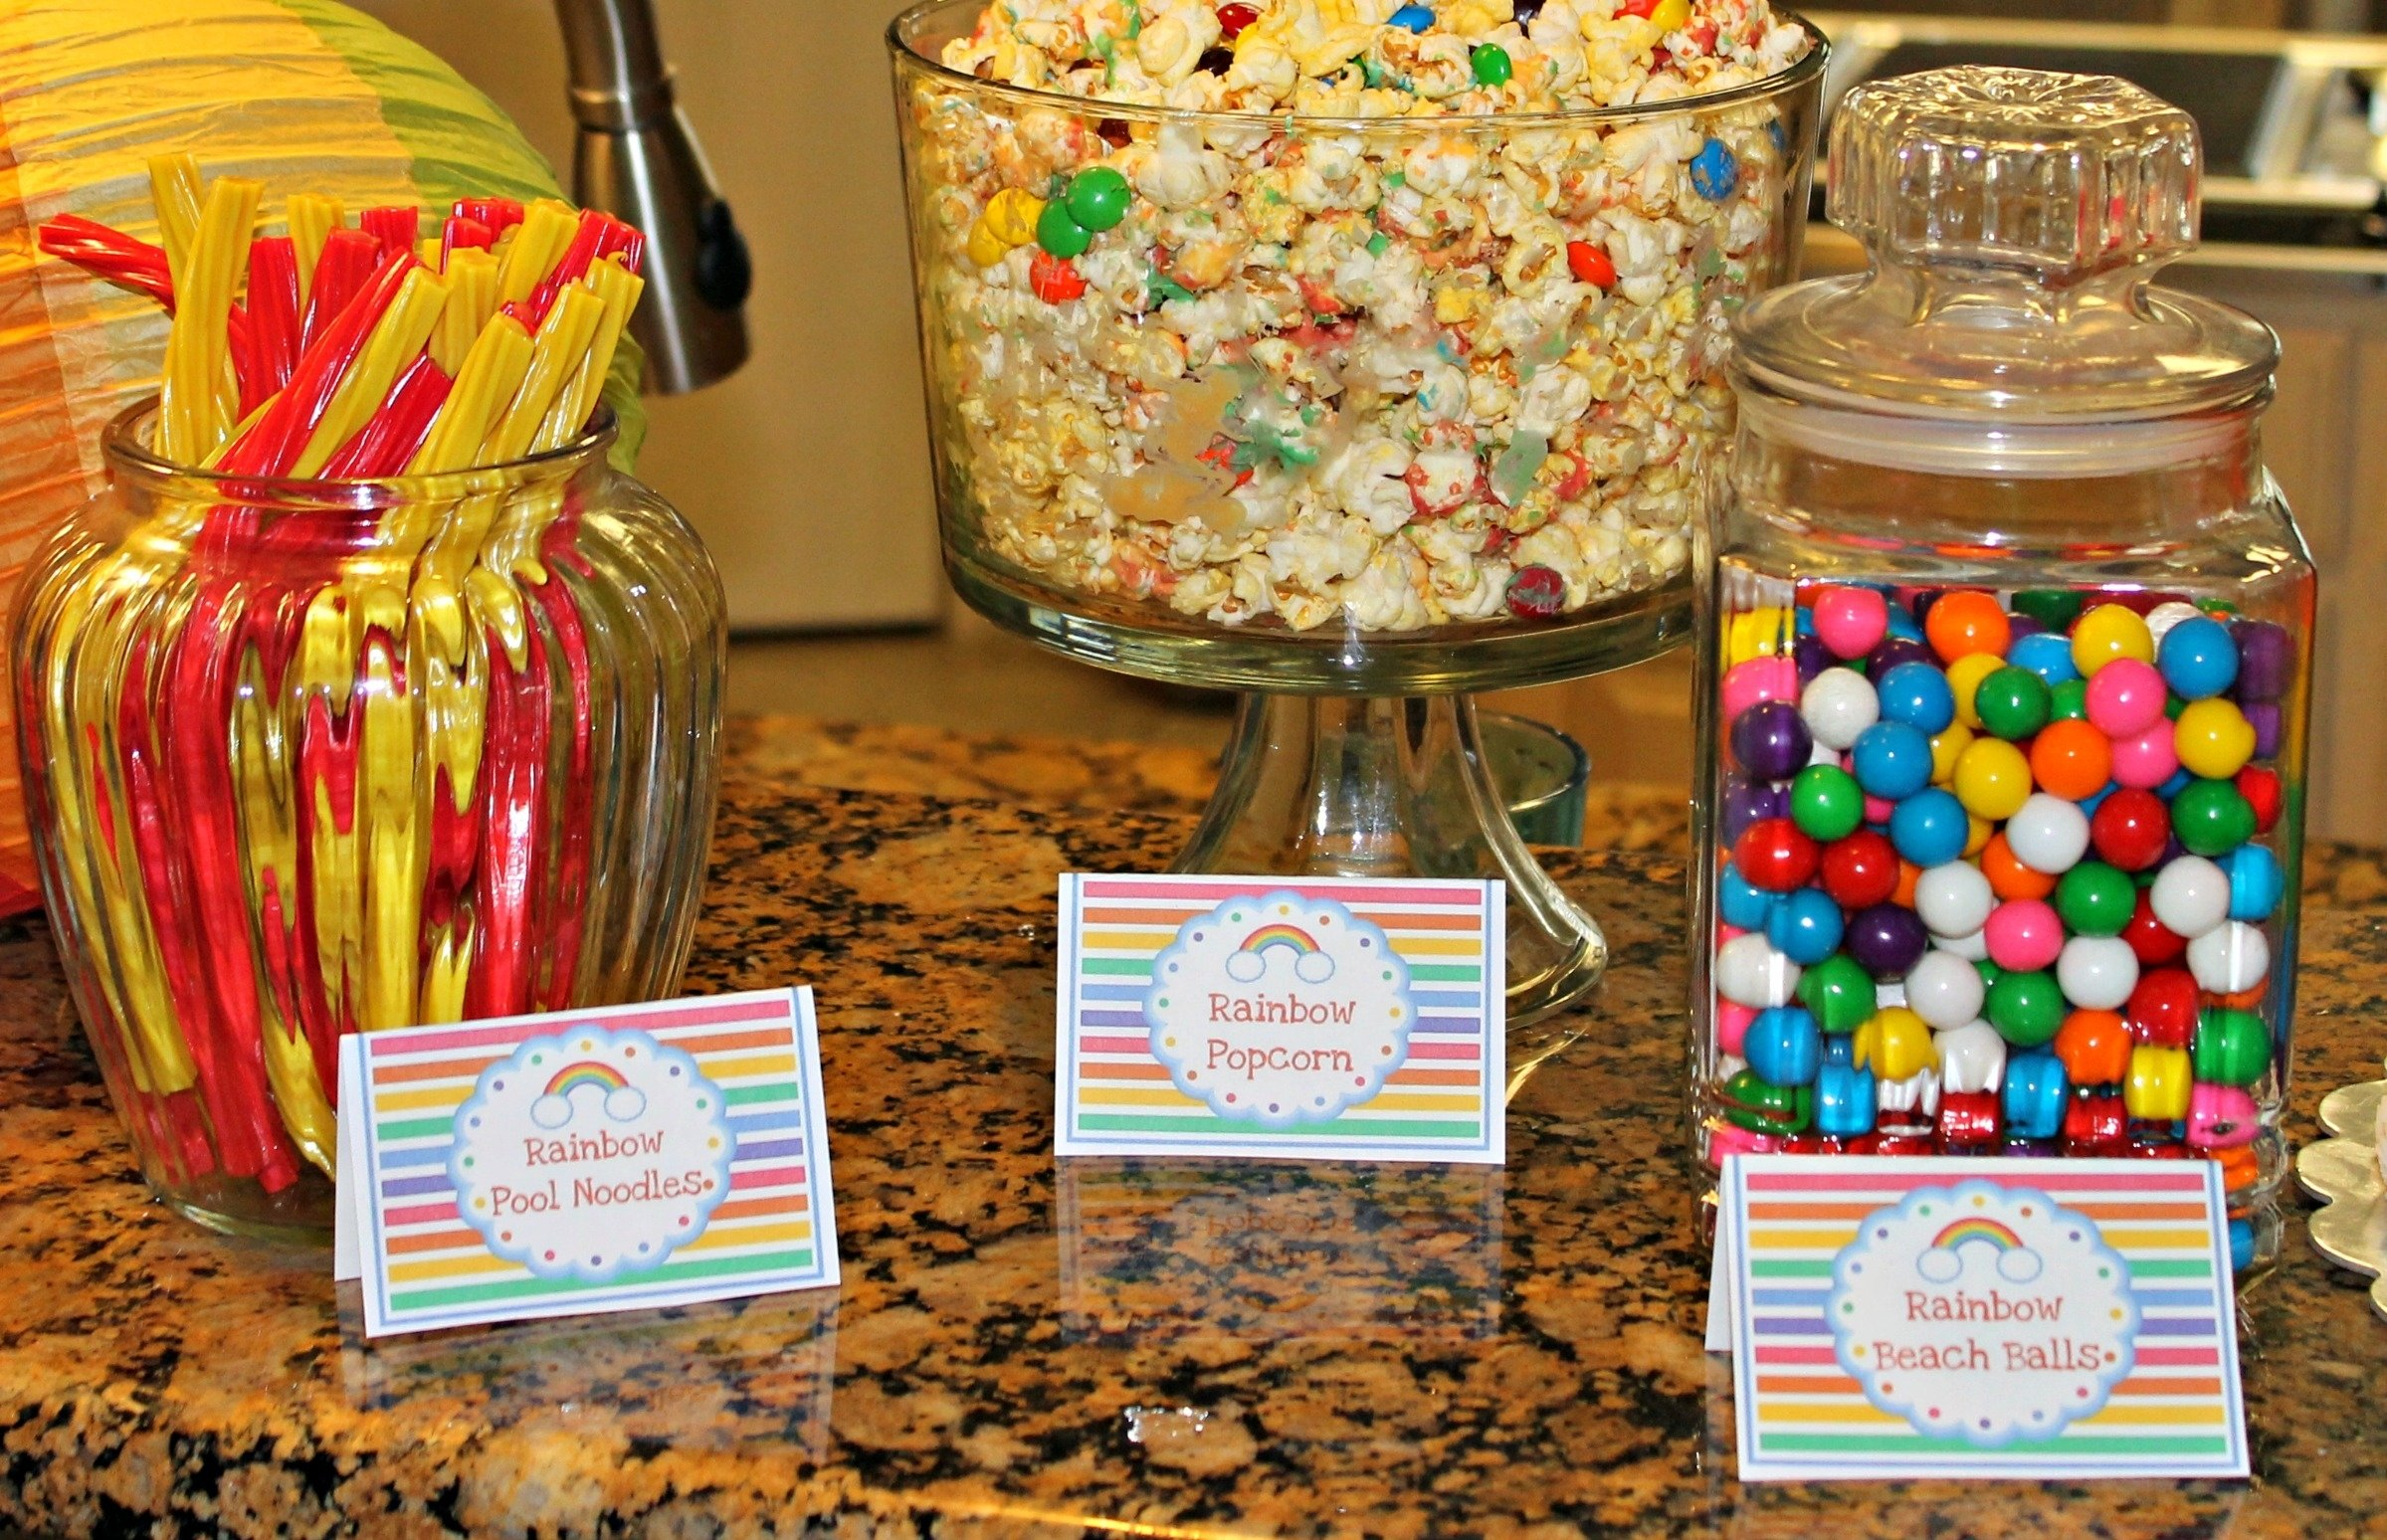 10 Stylish Pool Party Food Ideas For Kids easy pool party food ideas rainbow 1 dylan s printable templates 2020